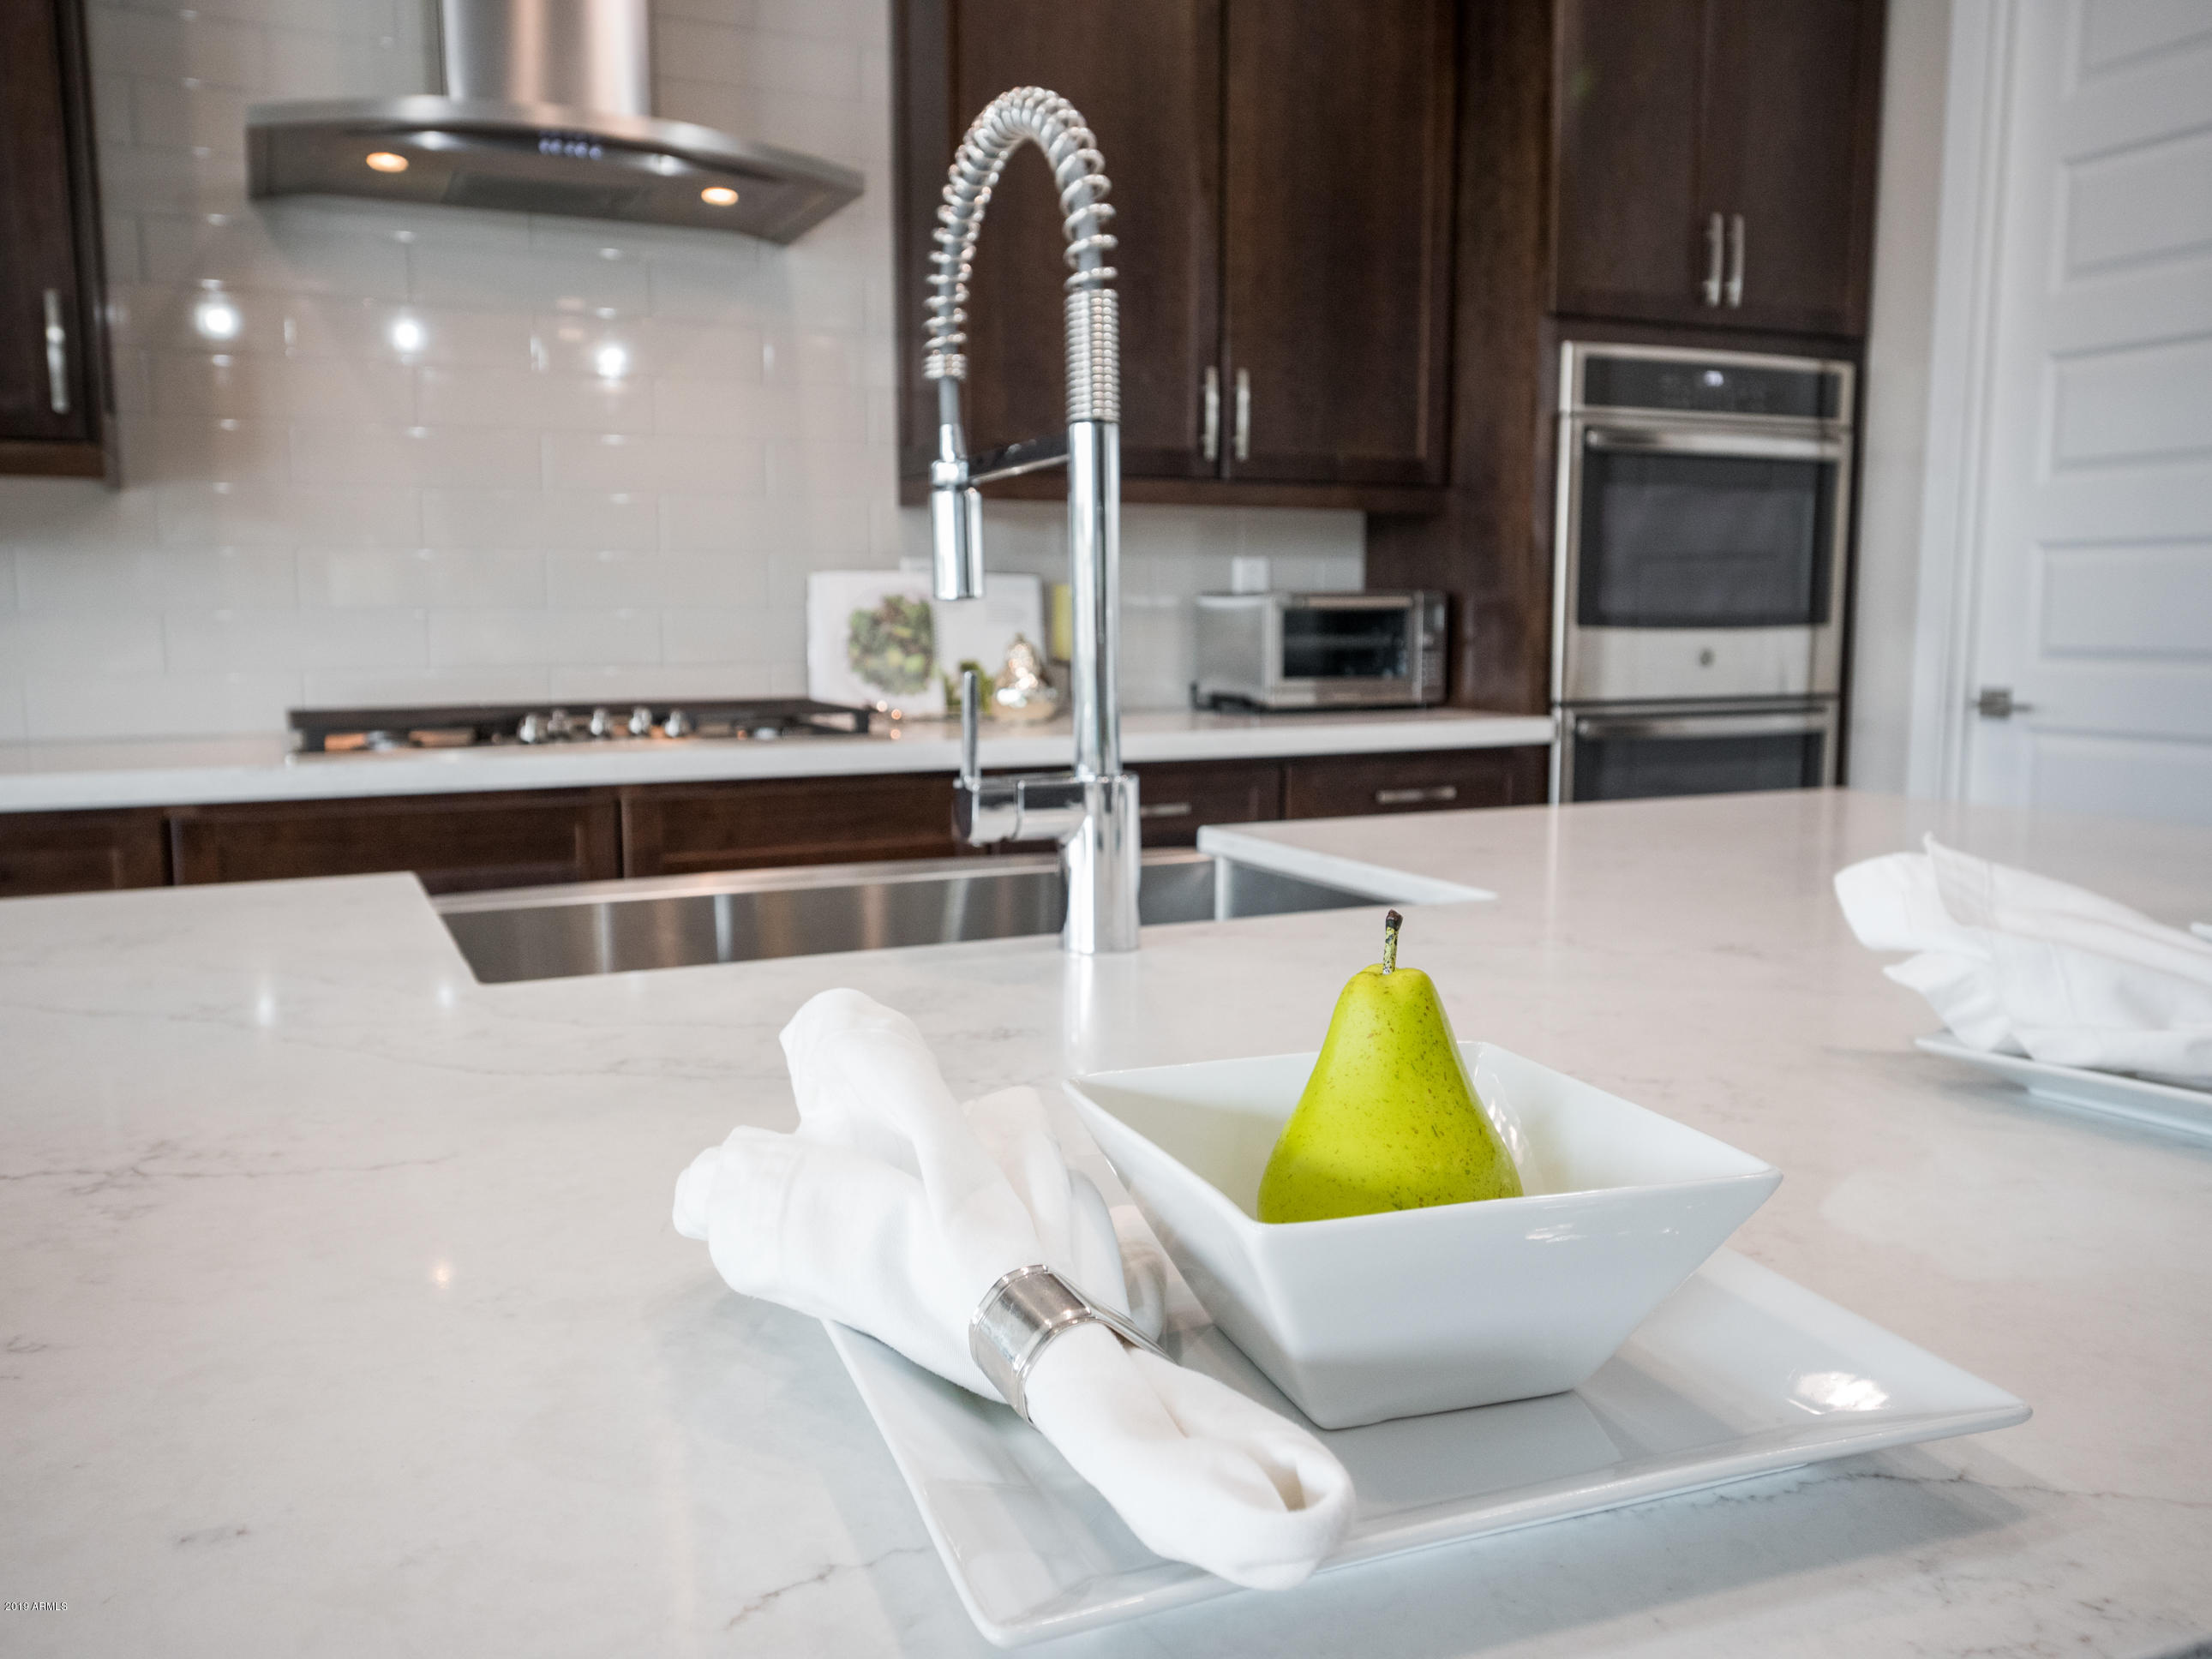 High-End Fixtures & Stainless Farm Sink